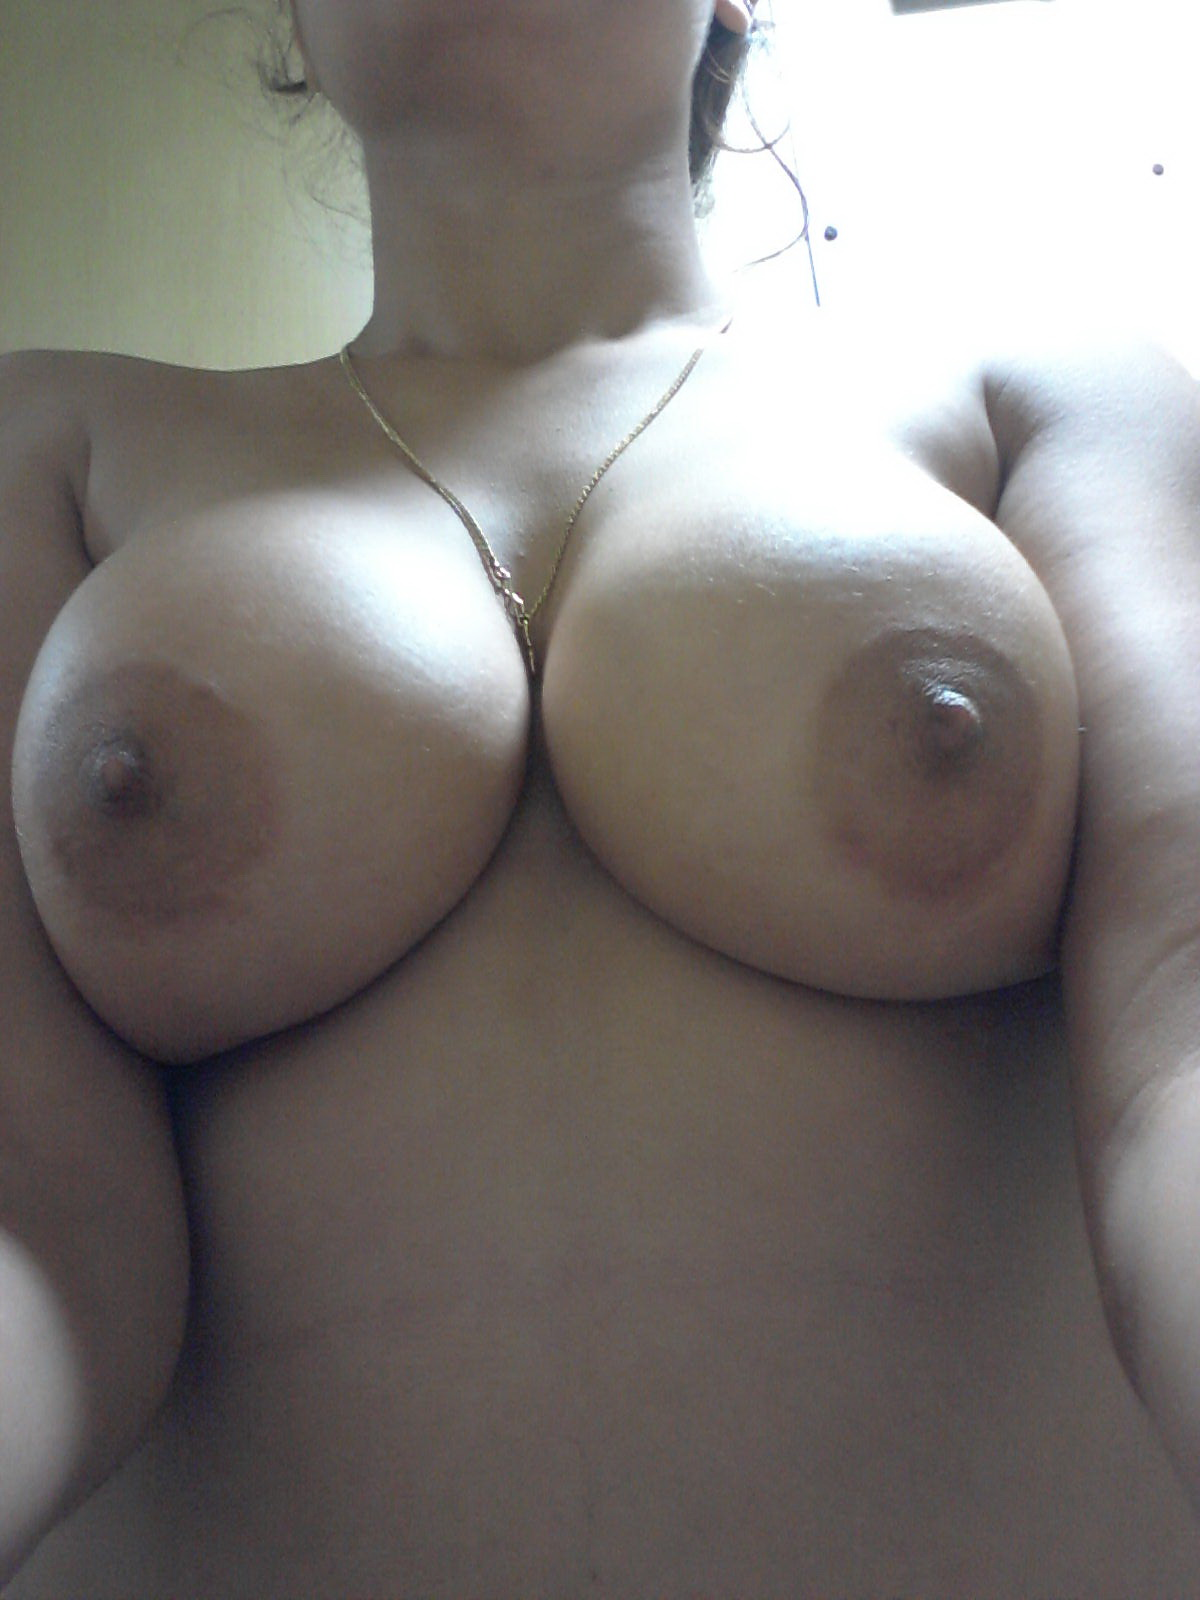 Indian wife got boobs nude 7